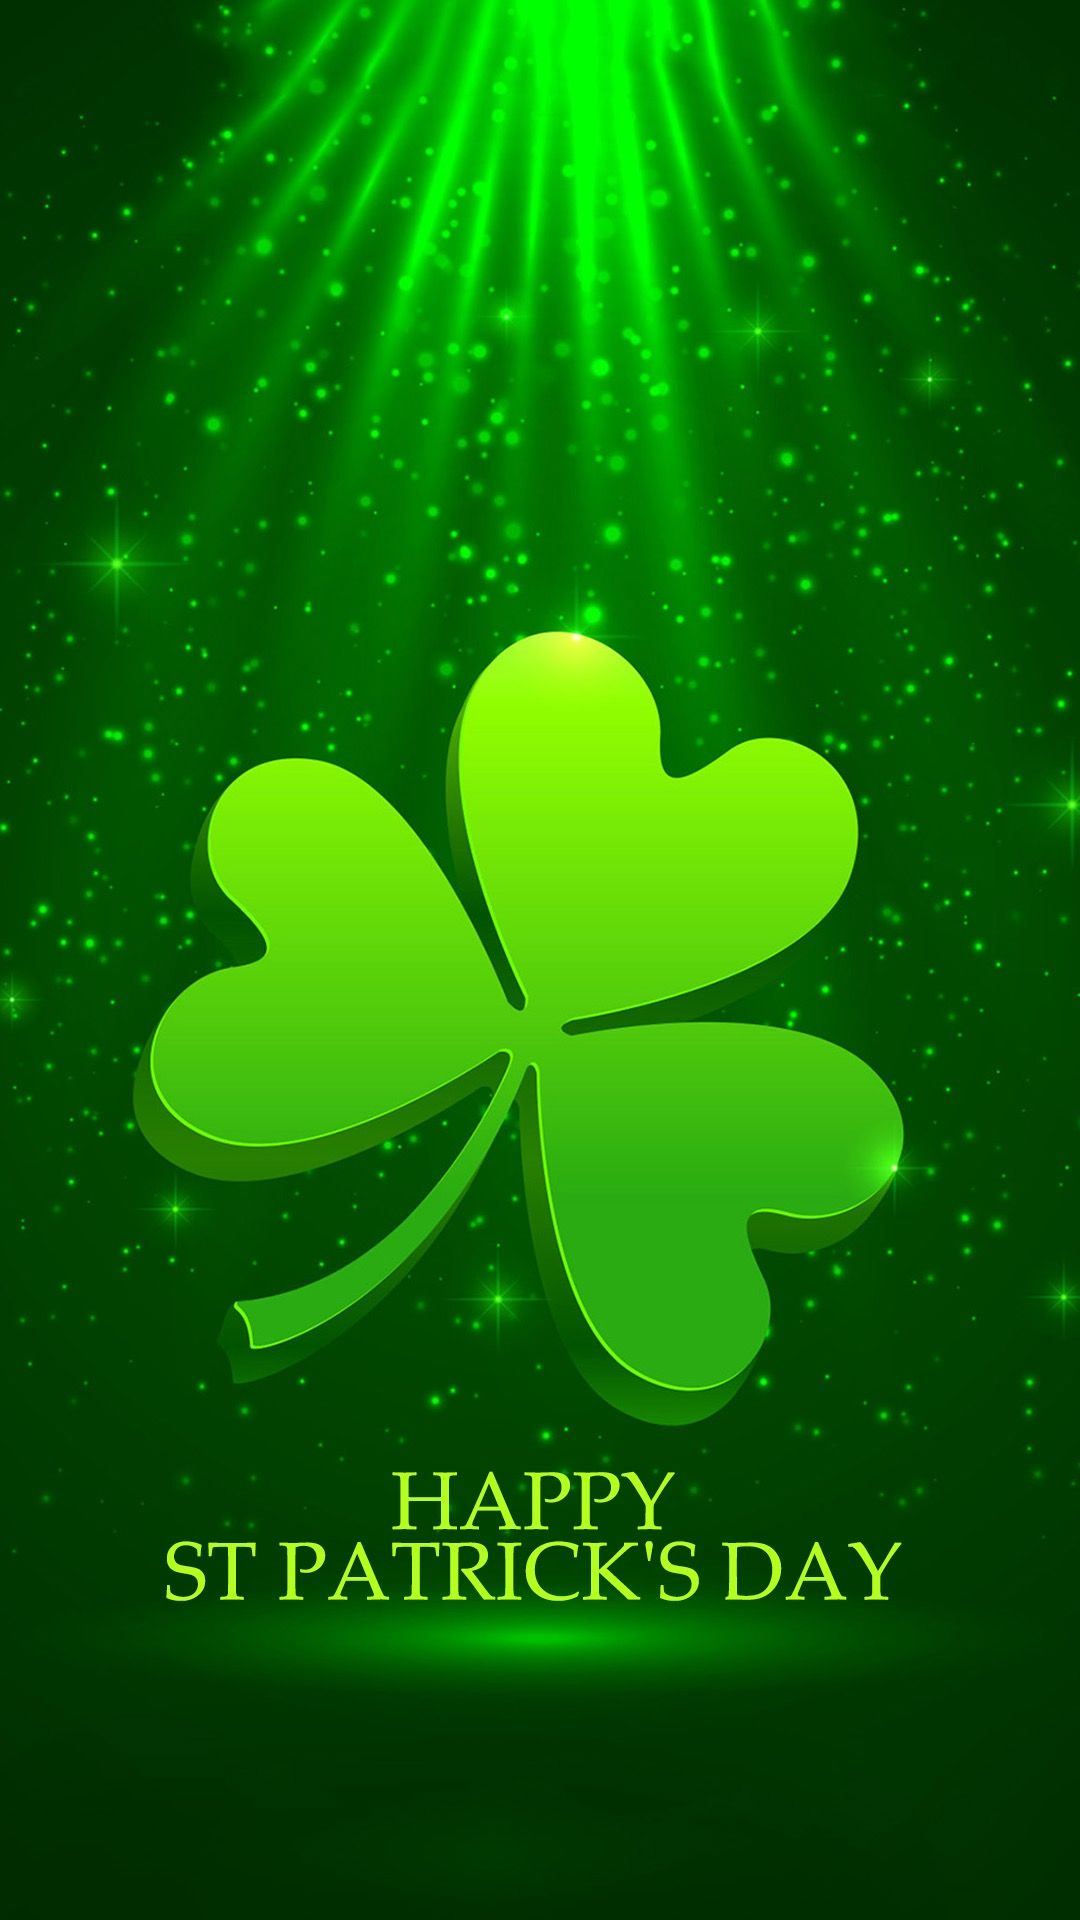 Happy St Patrick's Day St patricks day wallpaper, Easter